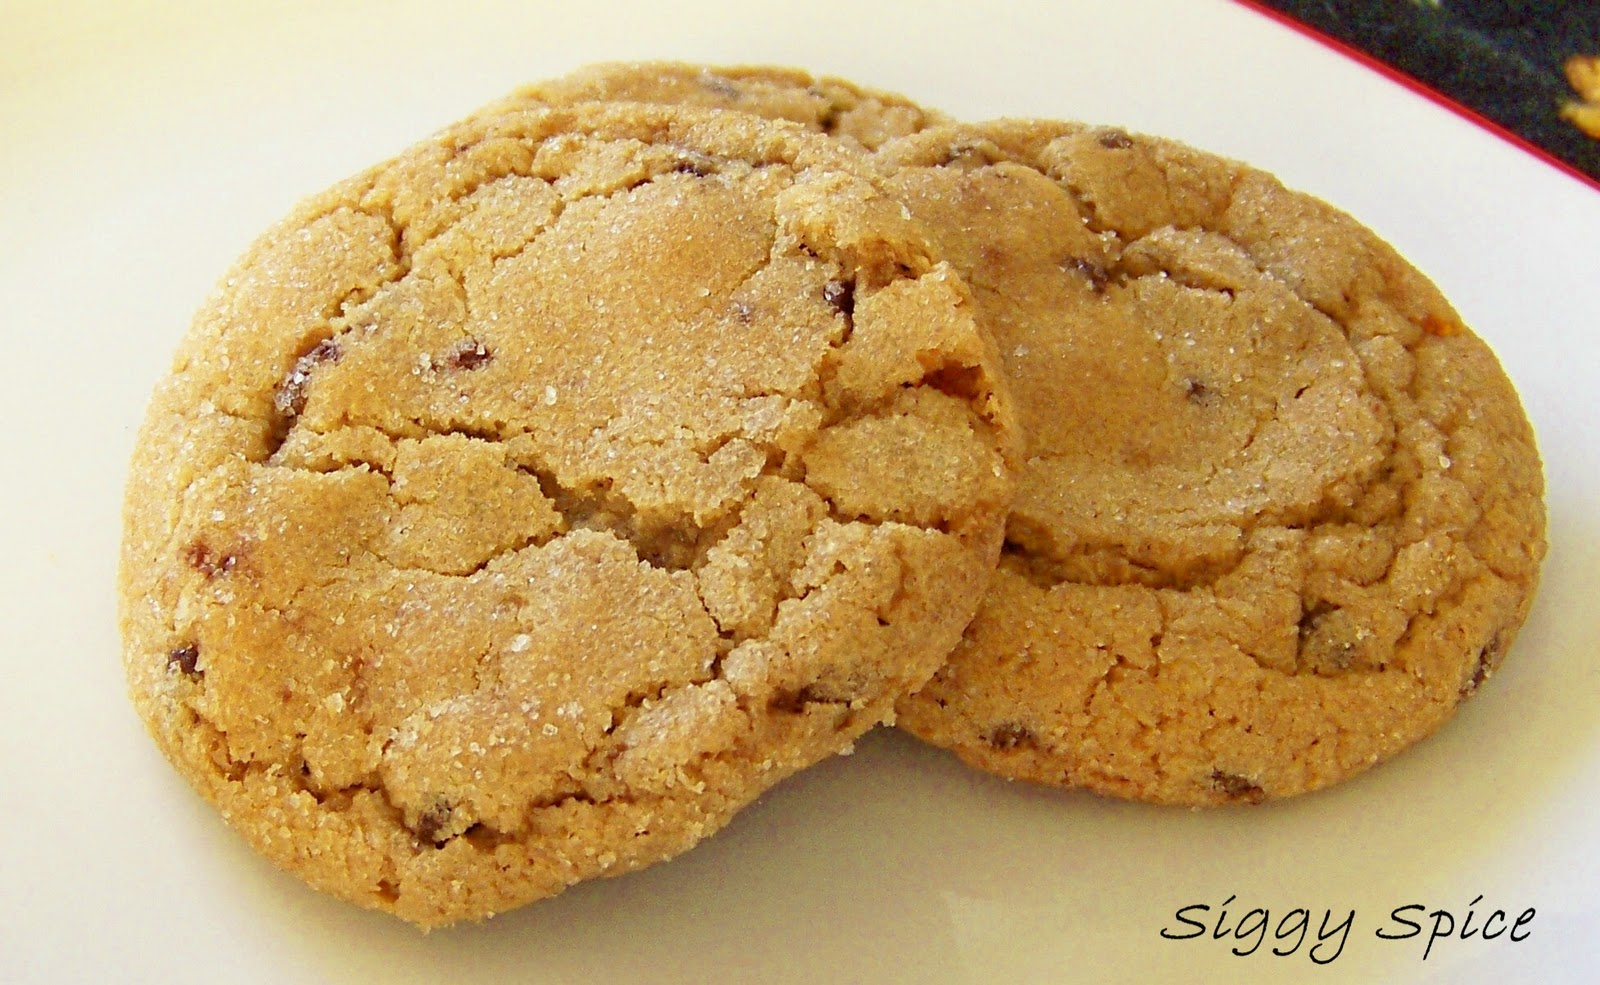 ... : Cappuccino Chip Cookies and Fudge Puddles. It's a Cookie Two-fer